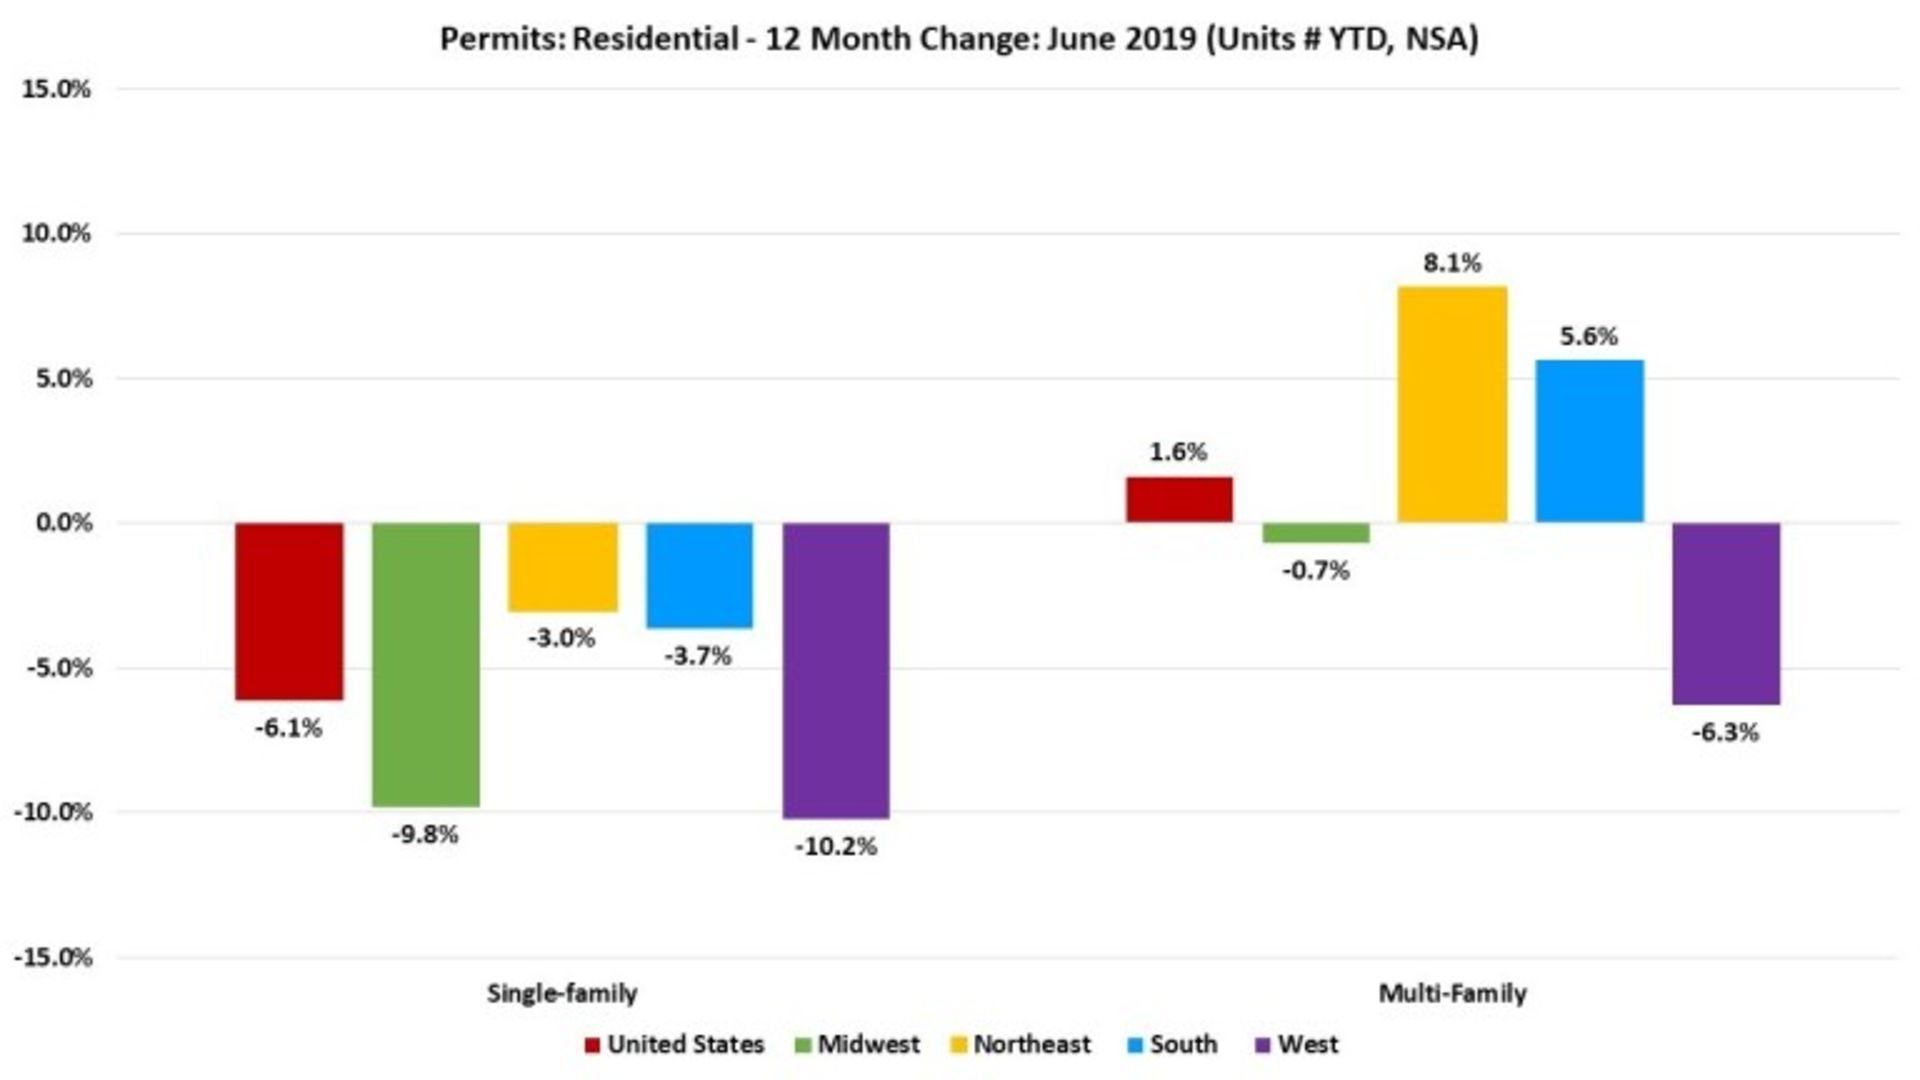 Decline in Single-Family Permits Continues For The First Half of 2019